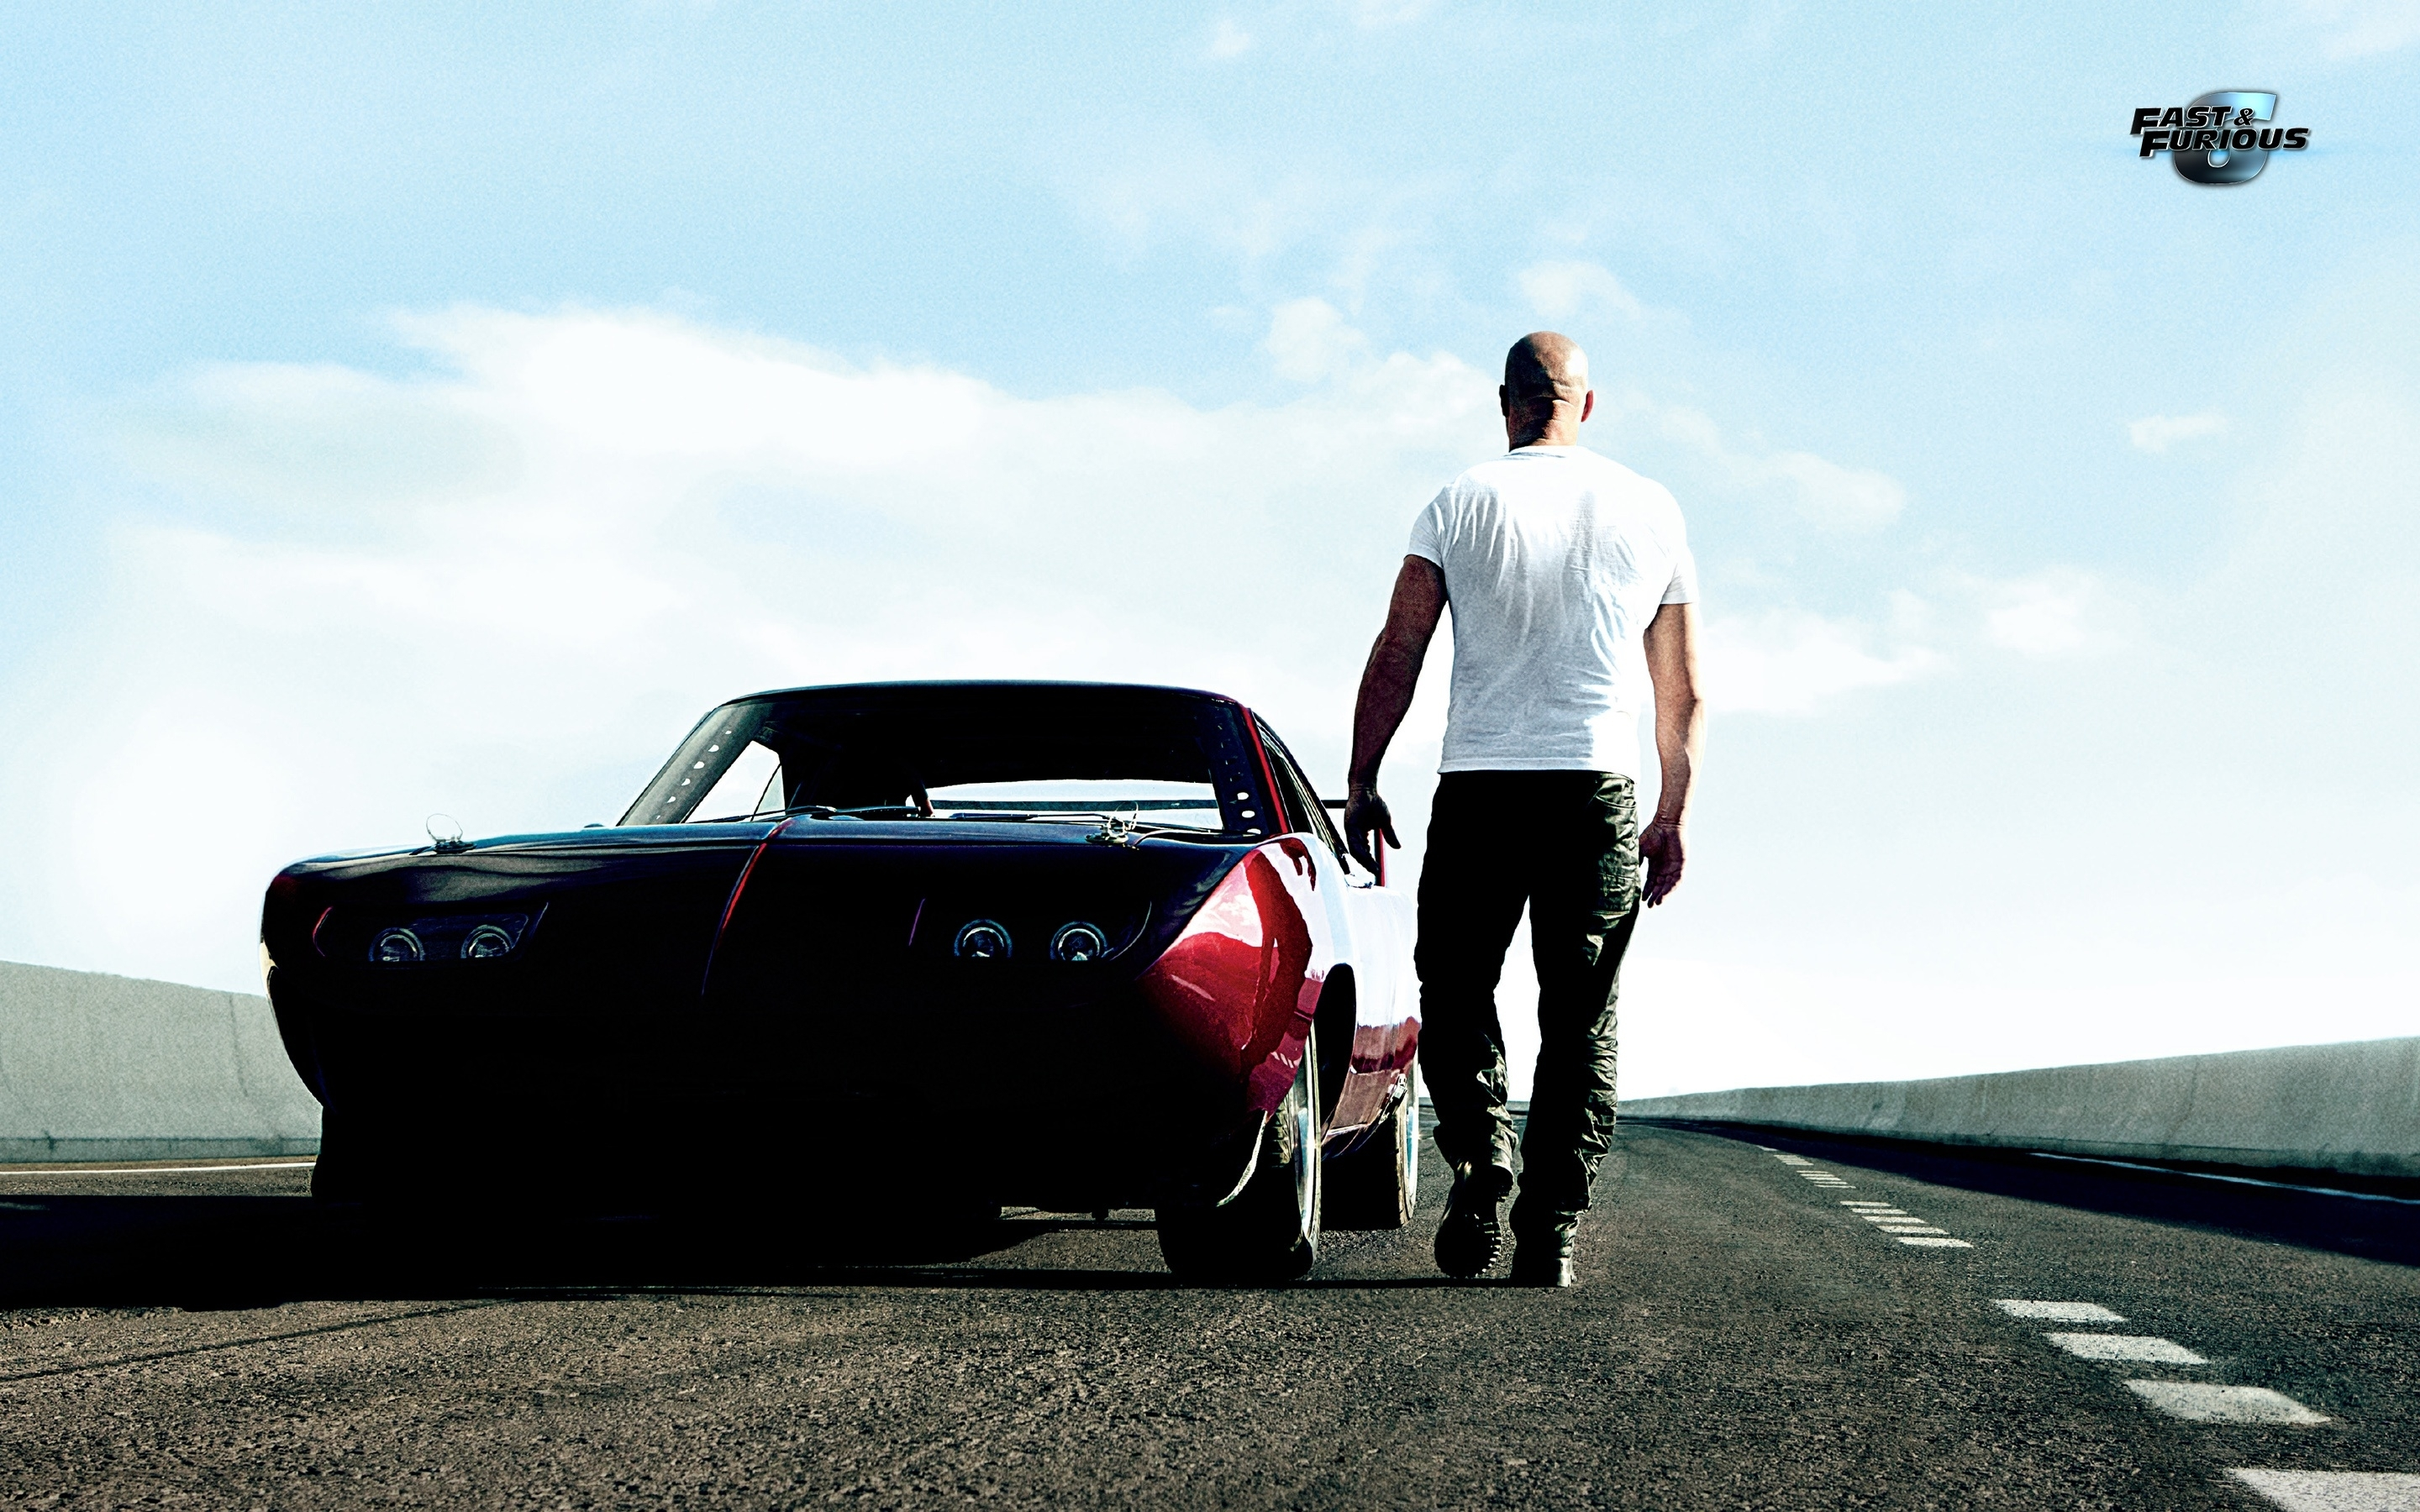 fast and furious car images wallpapers for free download about (789